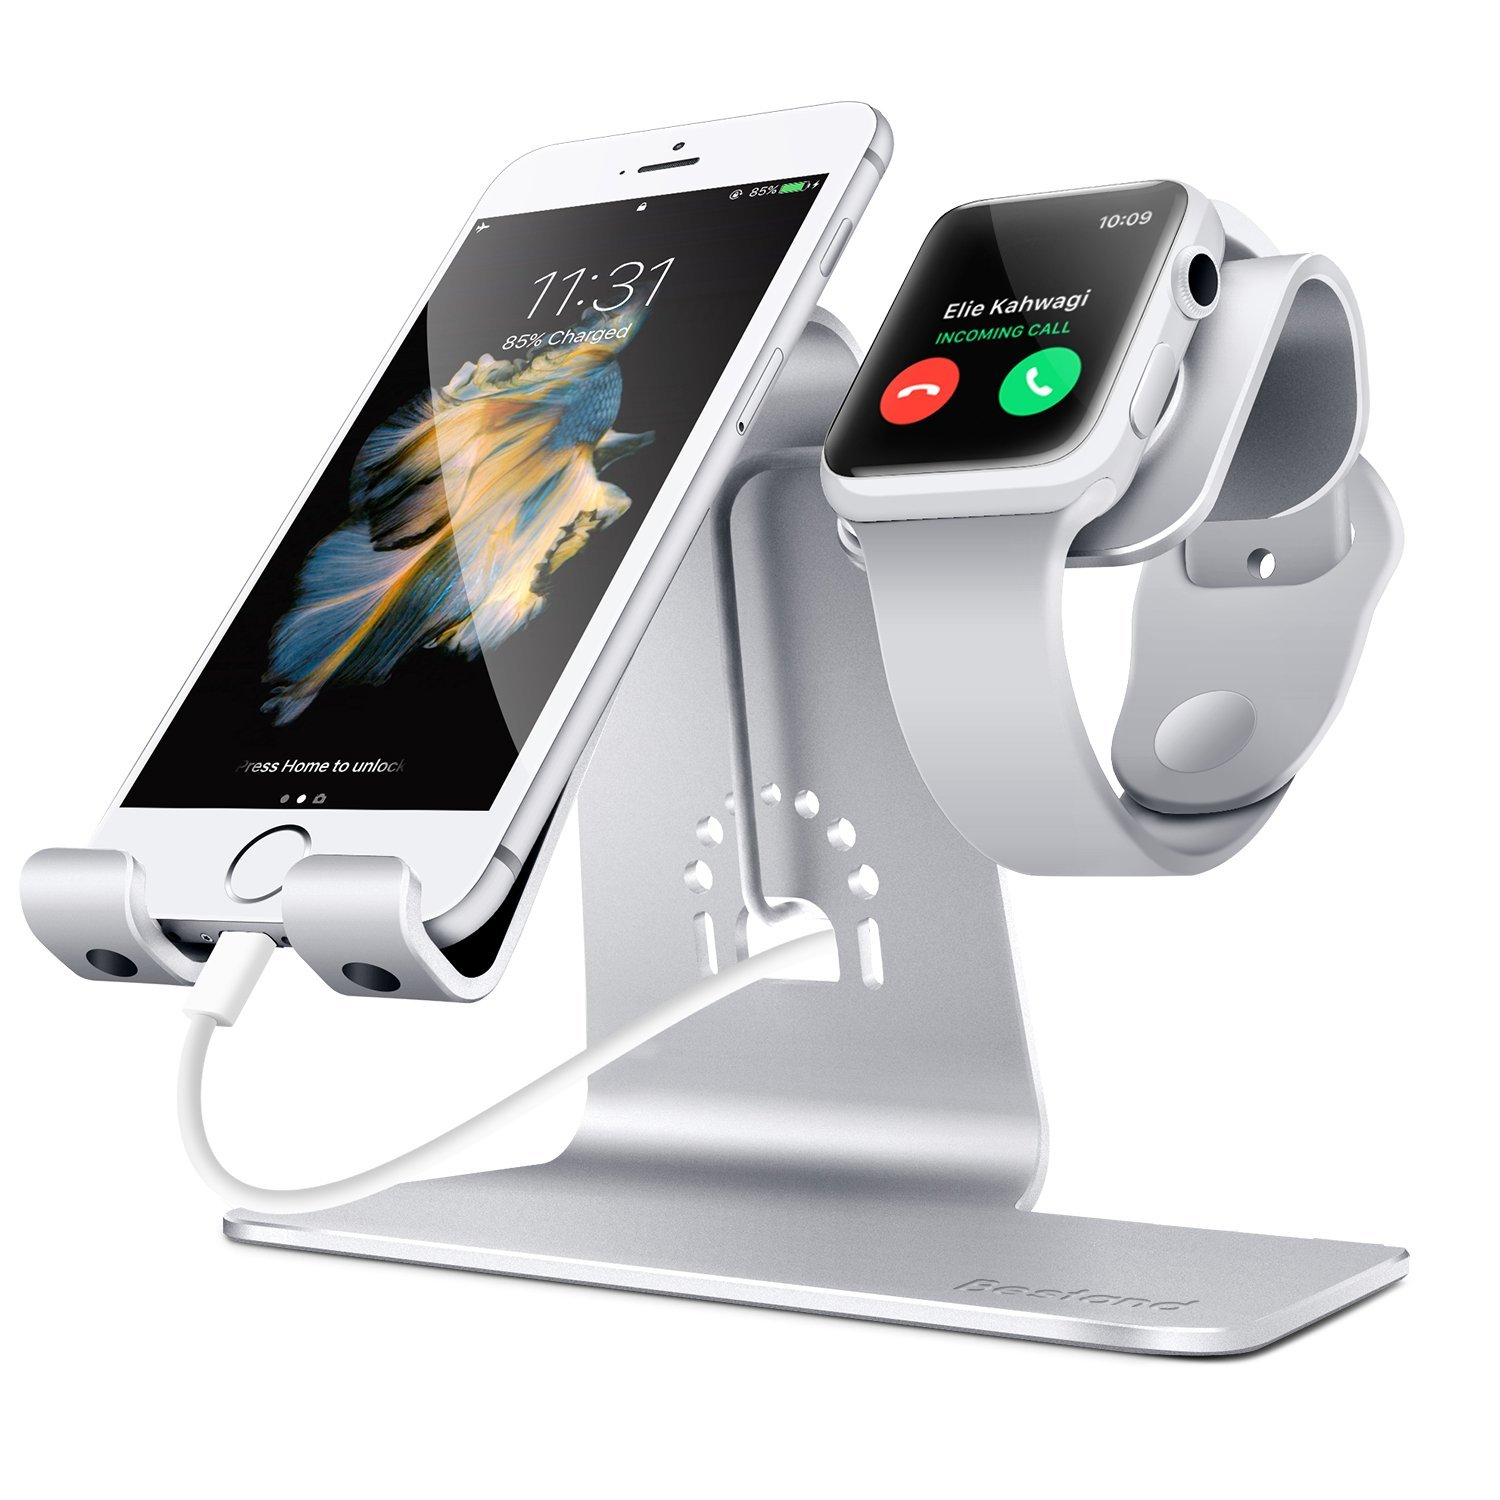 Charging Dock Station For Le Watch And Iphone